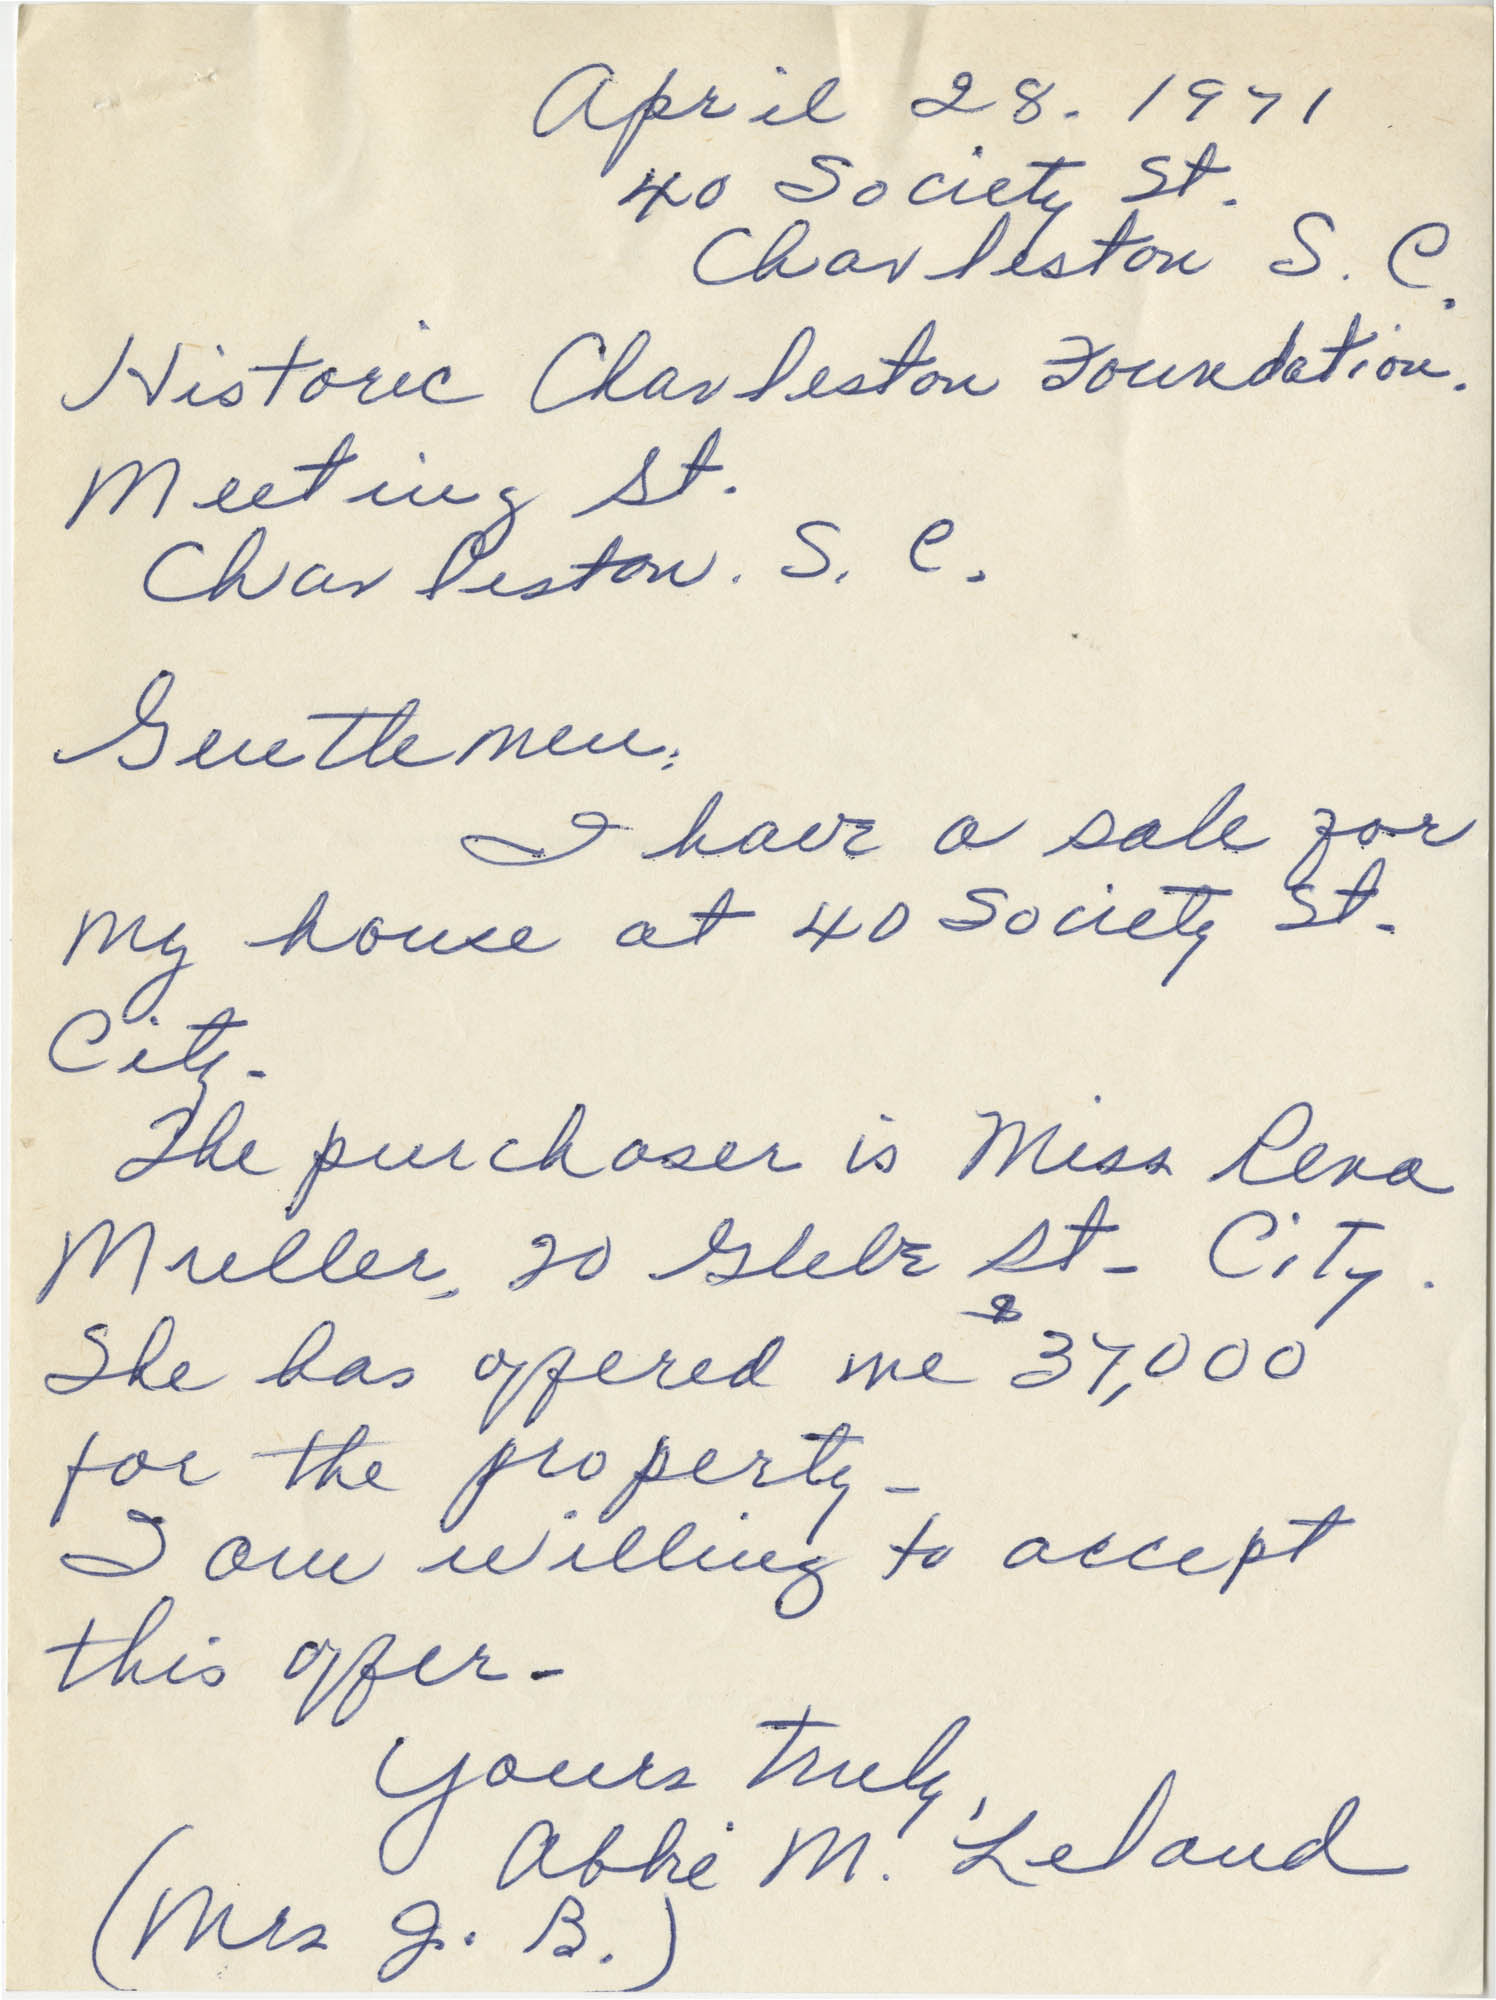 Letter from Abbie M. Leland to Historic Charleston Foundation